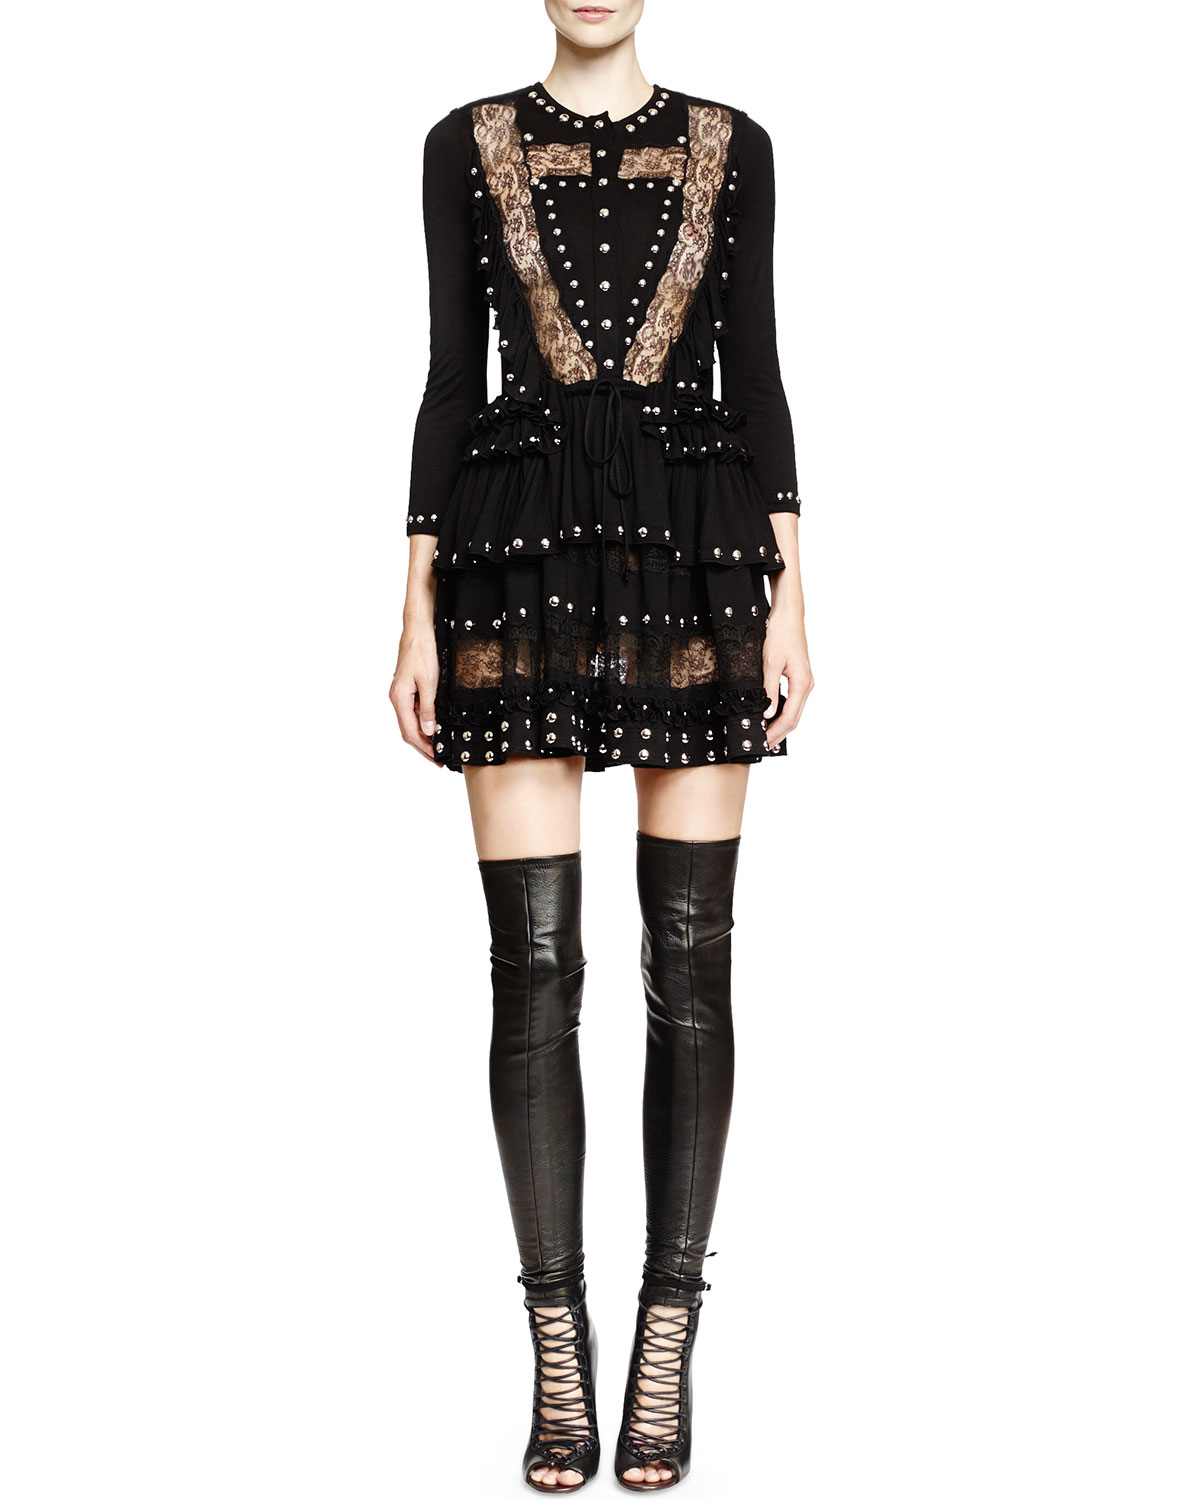 Lyst - Givenchy Studded Lace-inset Mini Dress in Black 9114d30f22